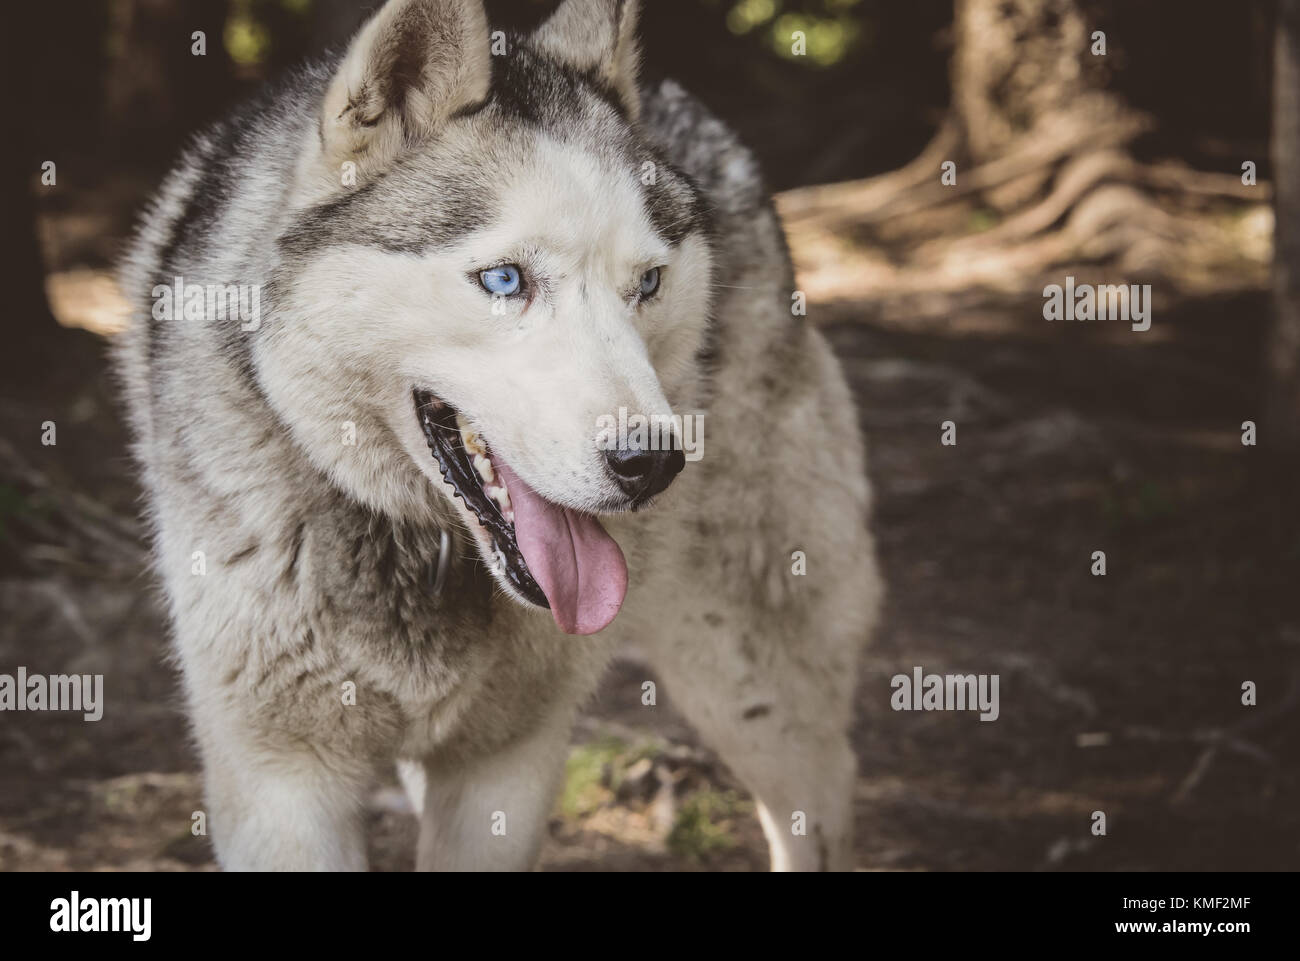 Siberian husky dog smiling in the summer - Stock Image